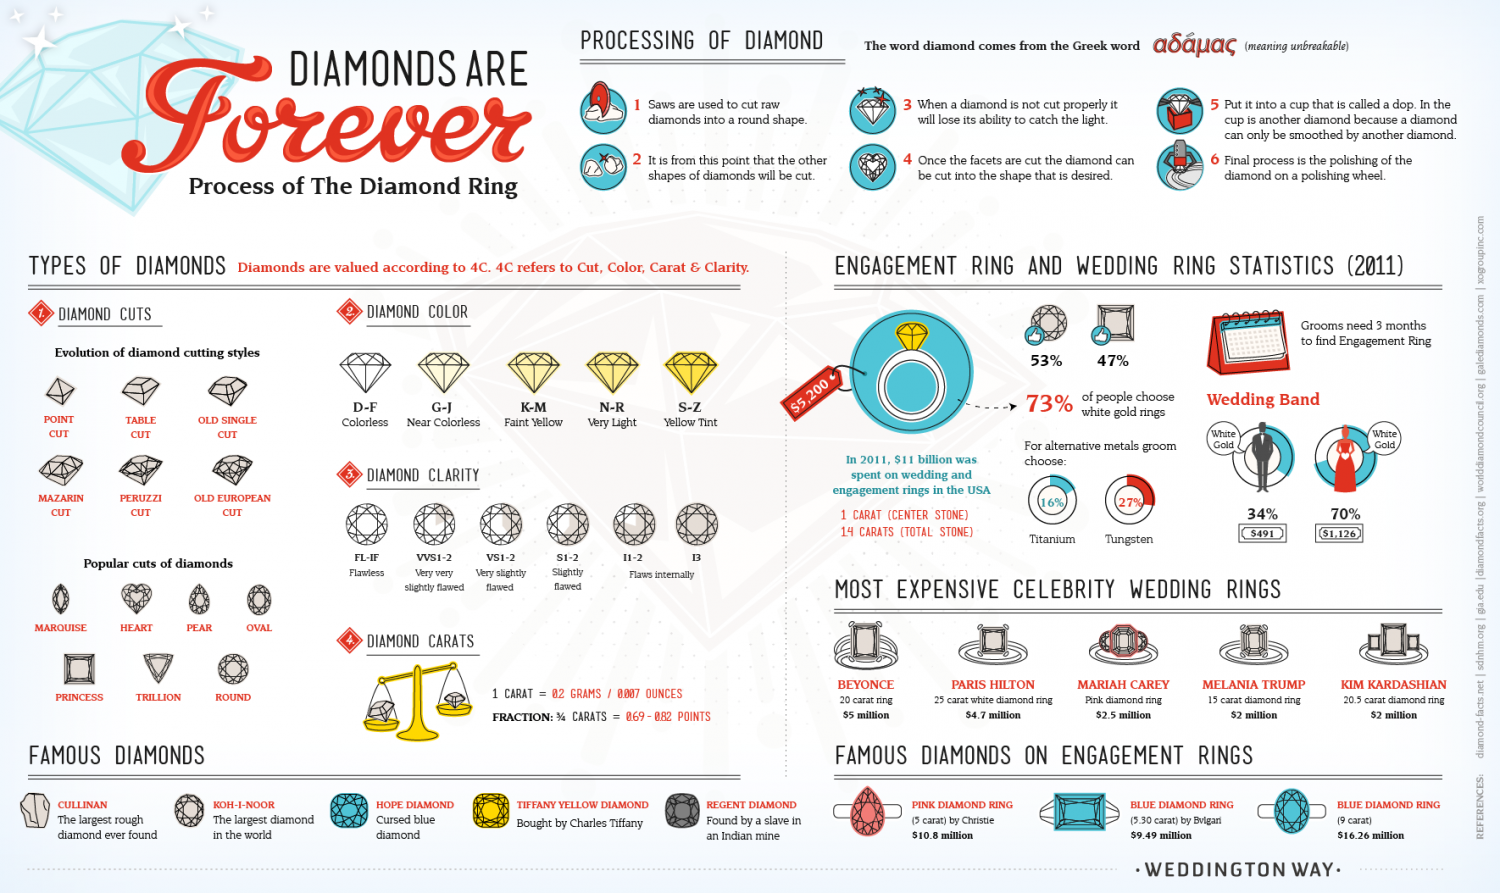 Diamonds Are Forever: Process of the Diamond Ring Infographic